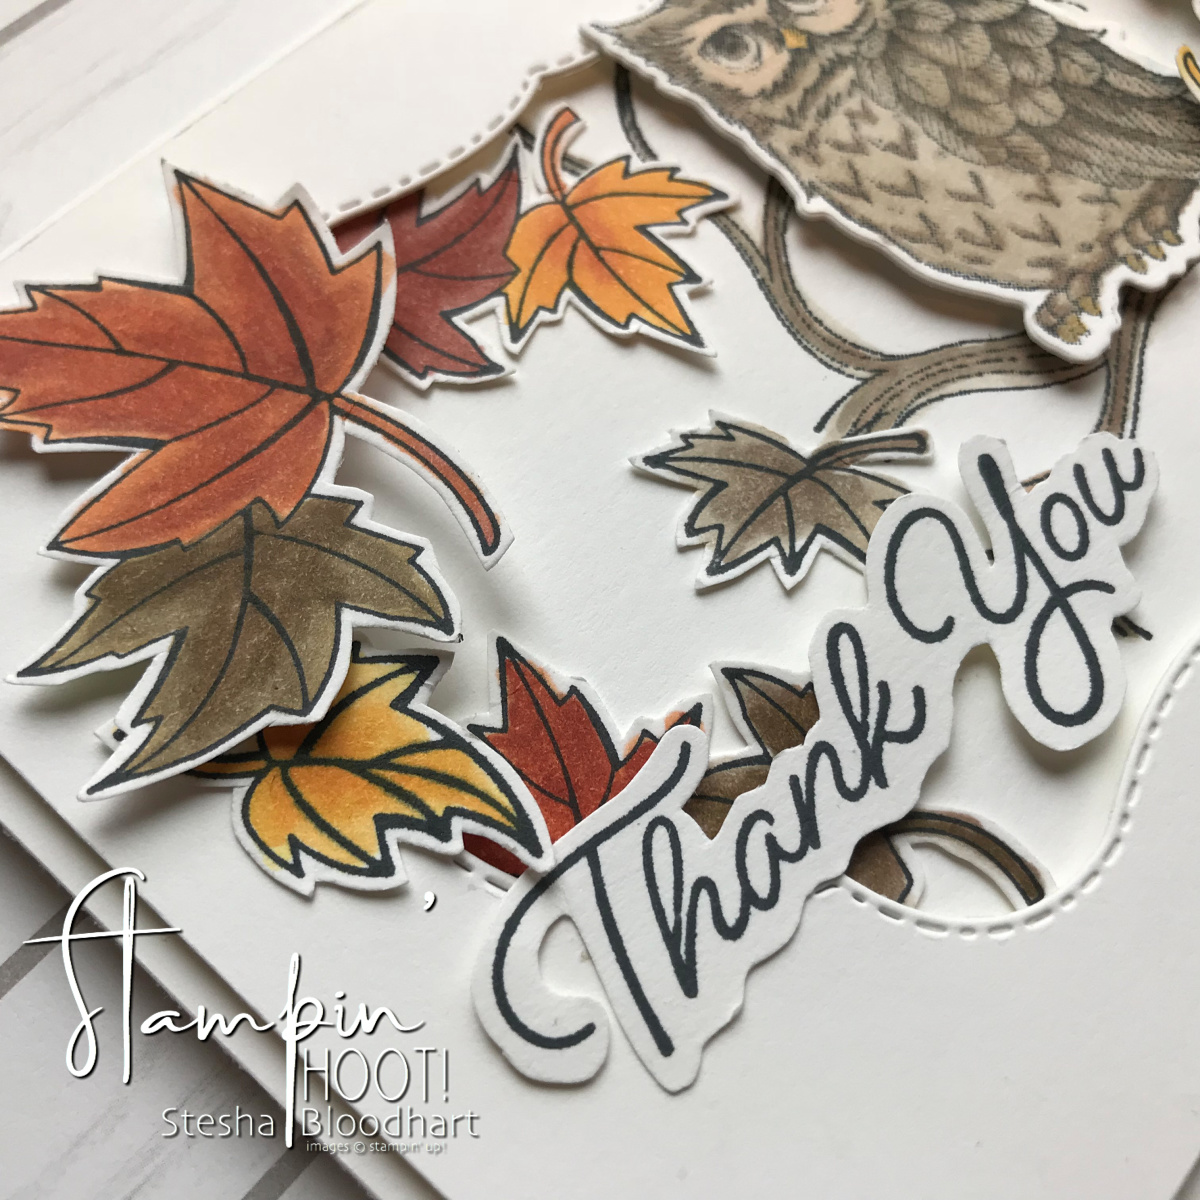 Blended Seasons Bundle & Still Night Bundle Thank You Card by Stesha Bloodhart, Stampin' Hoot! for WWYS183 Challenge #wwys183 #steshabloodhart #stampinhoot